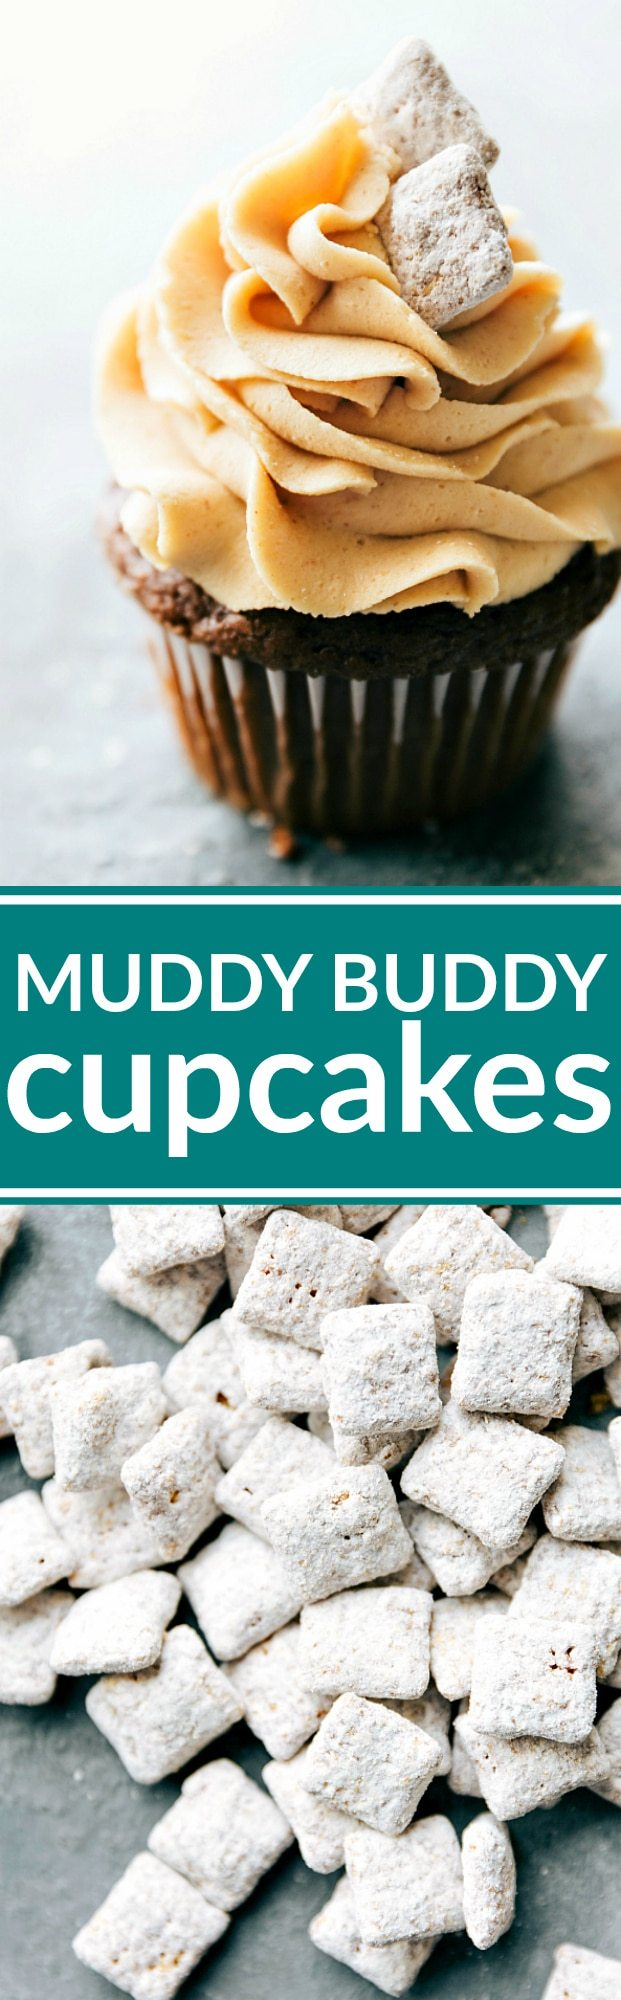 Muddy buddy cupcakes complete with a rich chocolate cupcake, peanut butter frosting, and muddy buddy garnish. The best chocolate peanut butter cupcakes! via chelseasmessyapron.com